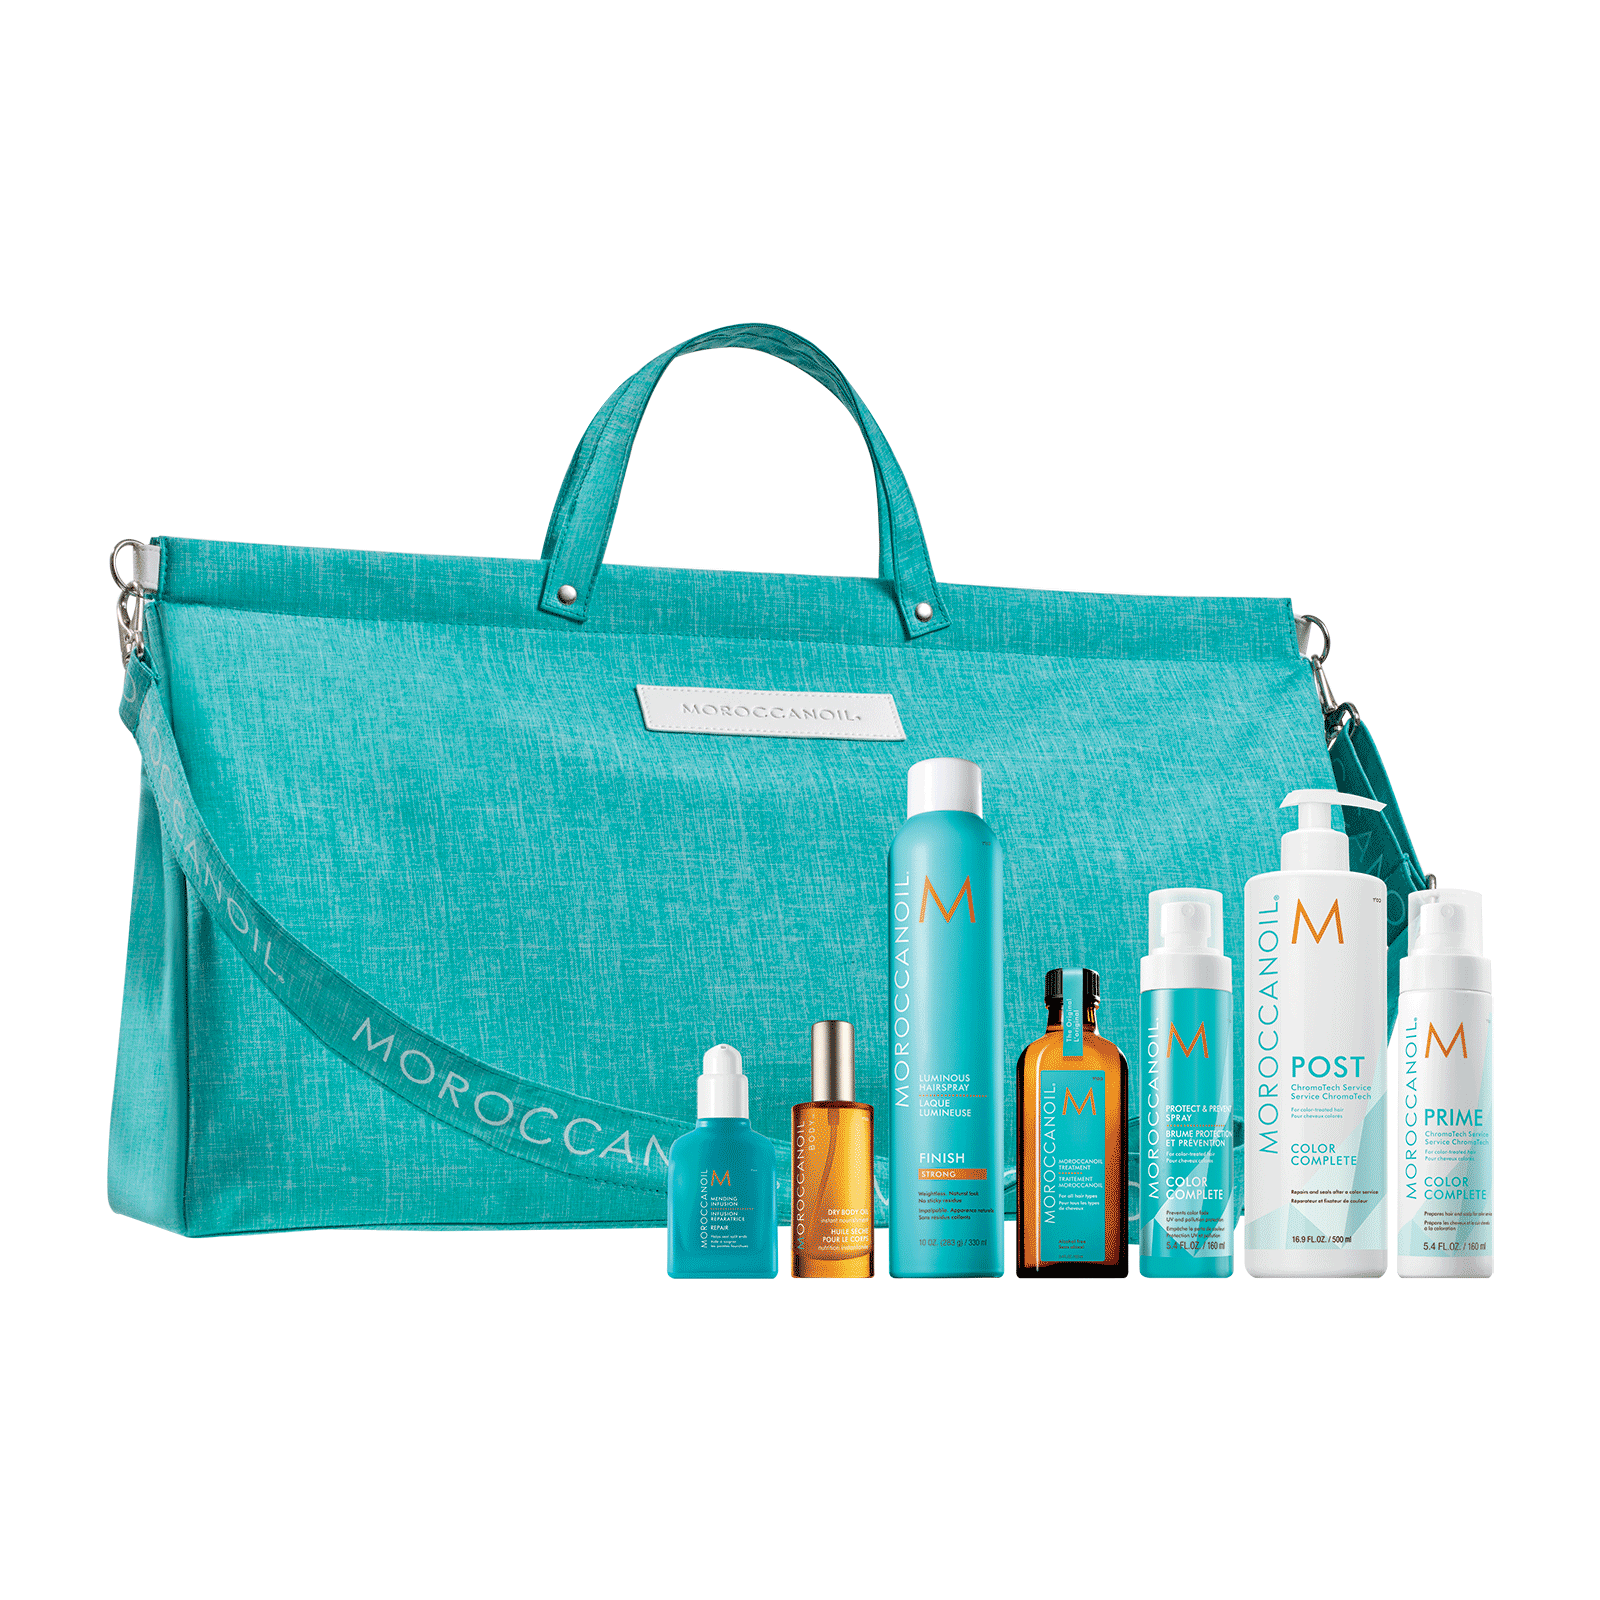 MoroccanOil Styling Secret